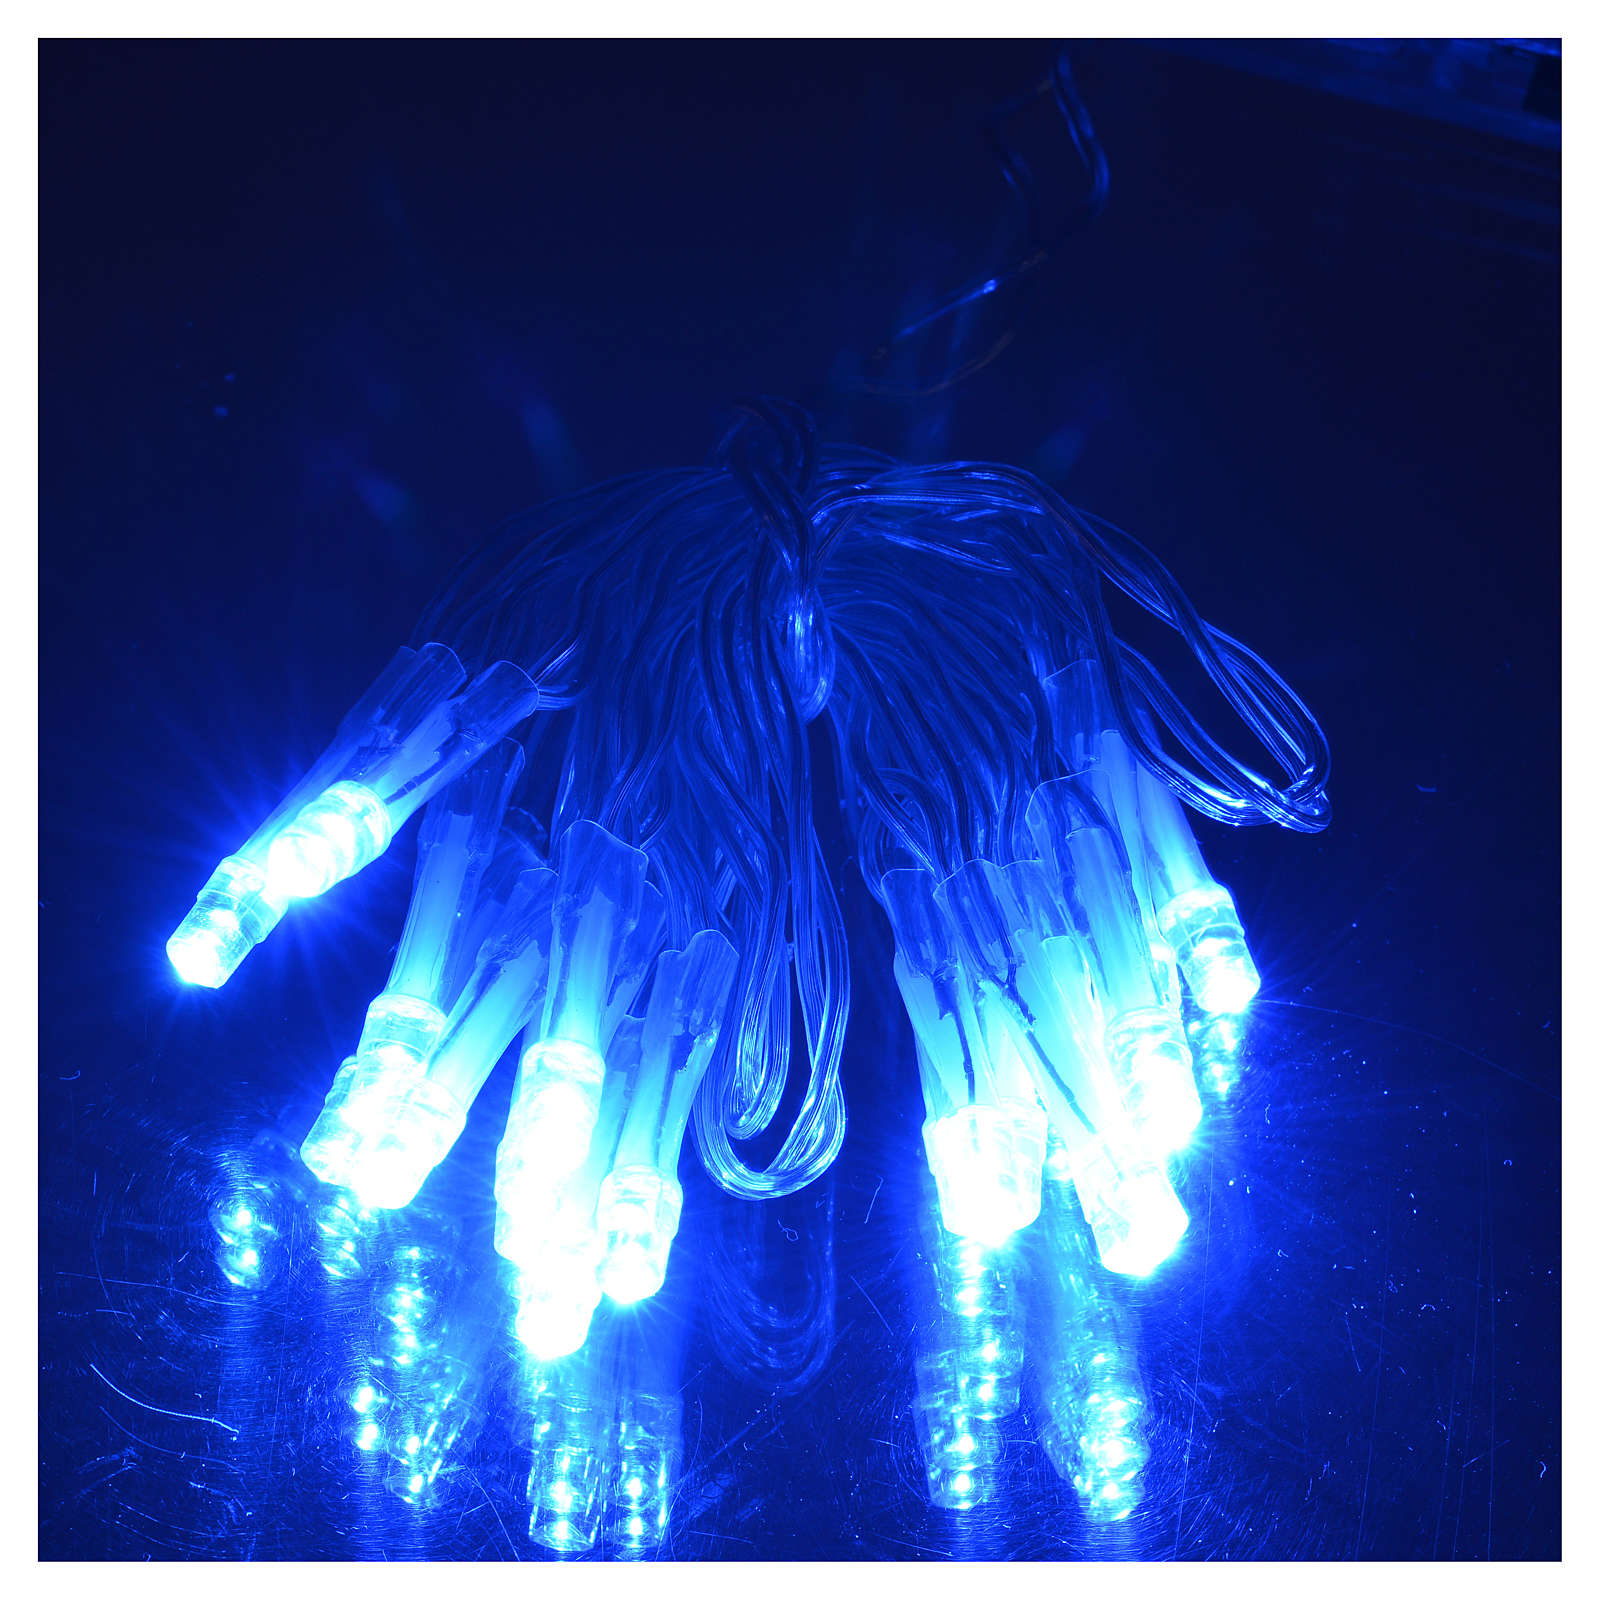 Fairy lights 20 LED blue lights, battery powered for indoor use 3